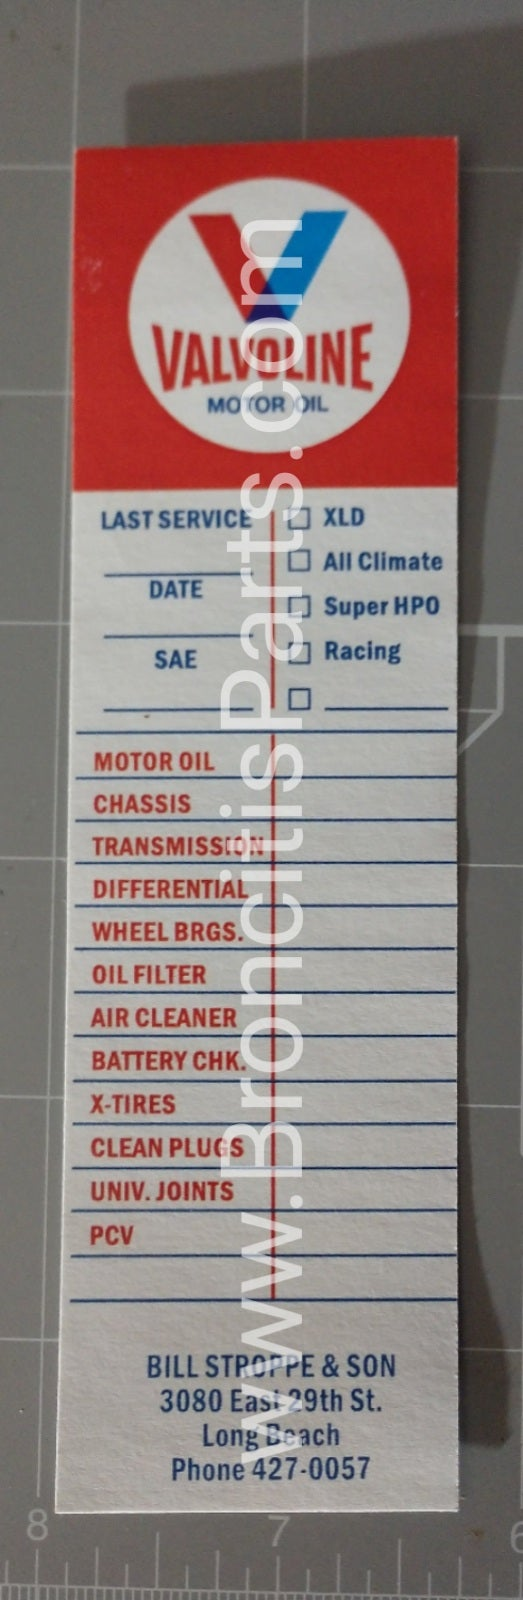 Image of Bill Stroppe & Son / Valvoline Service Decal